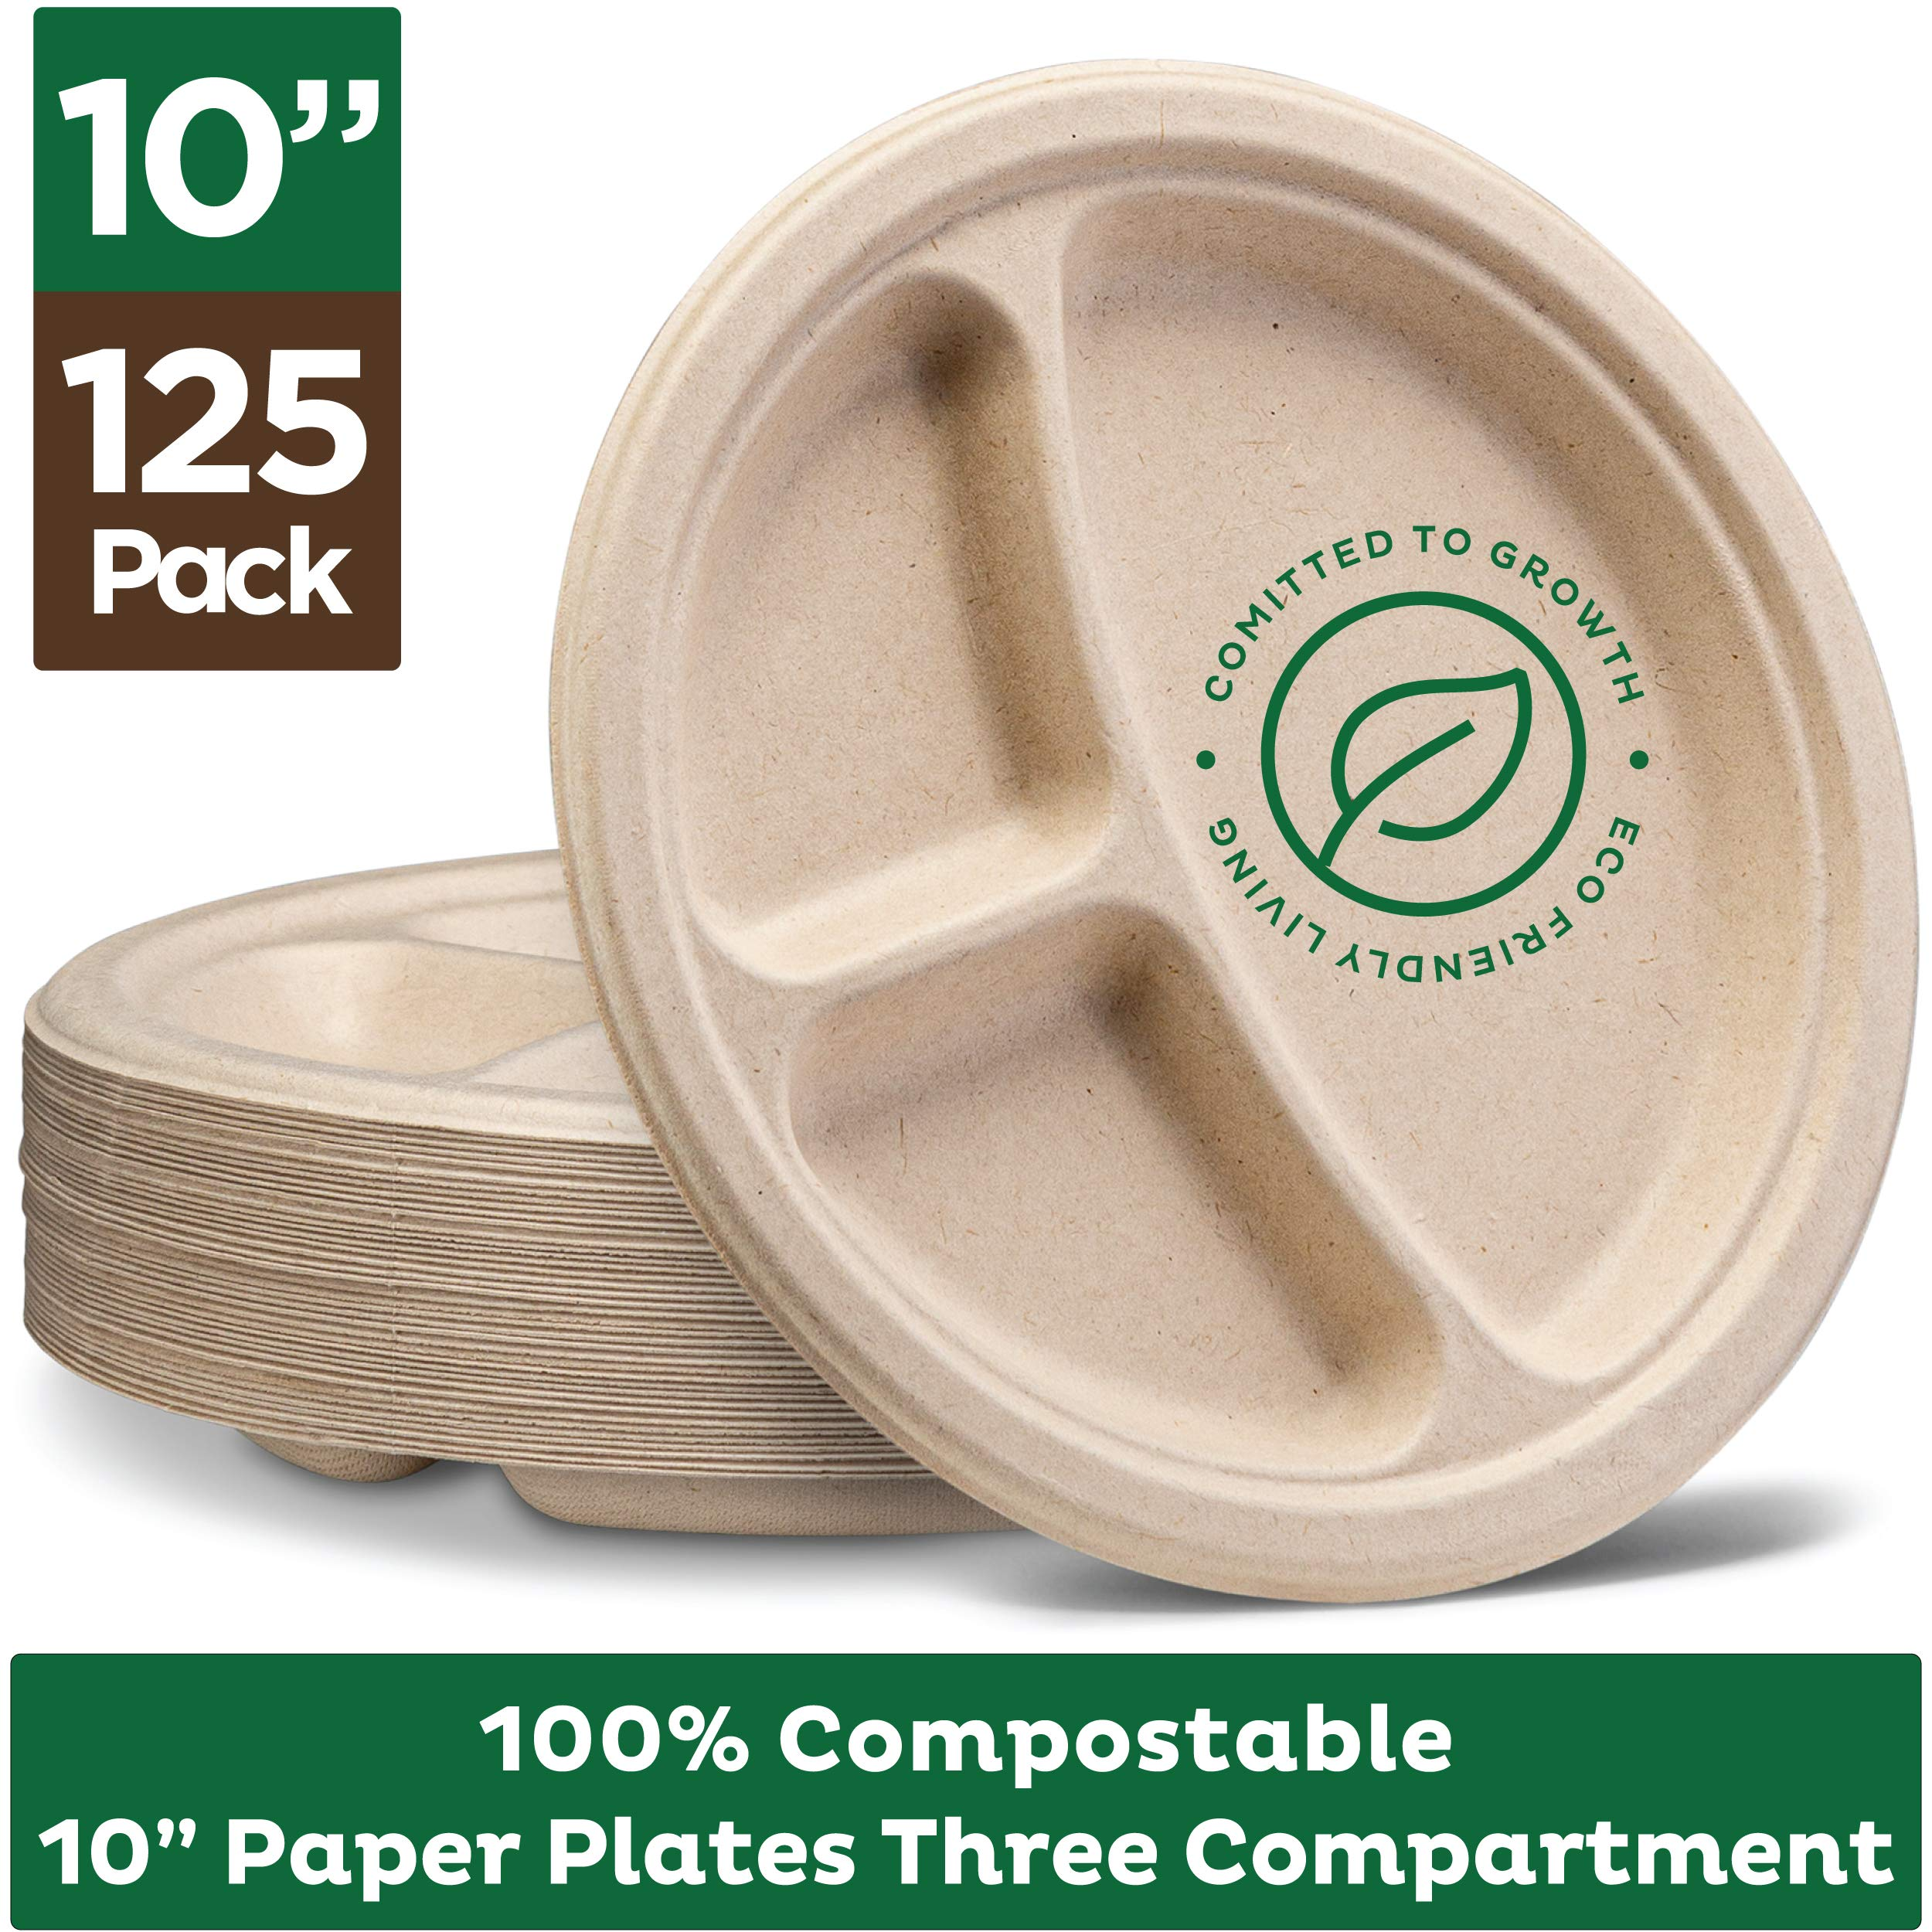 100% Compostable Paper Plates [10 inch - 125-Pack] 3 Compartment Disposable Plates Heavy-Duty Quality, Natural Bagasse Eco-Friendly Made of Sugar Cane & Wheat Straw Fibers, 10'' Biodegradable Plates by Stack Man